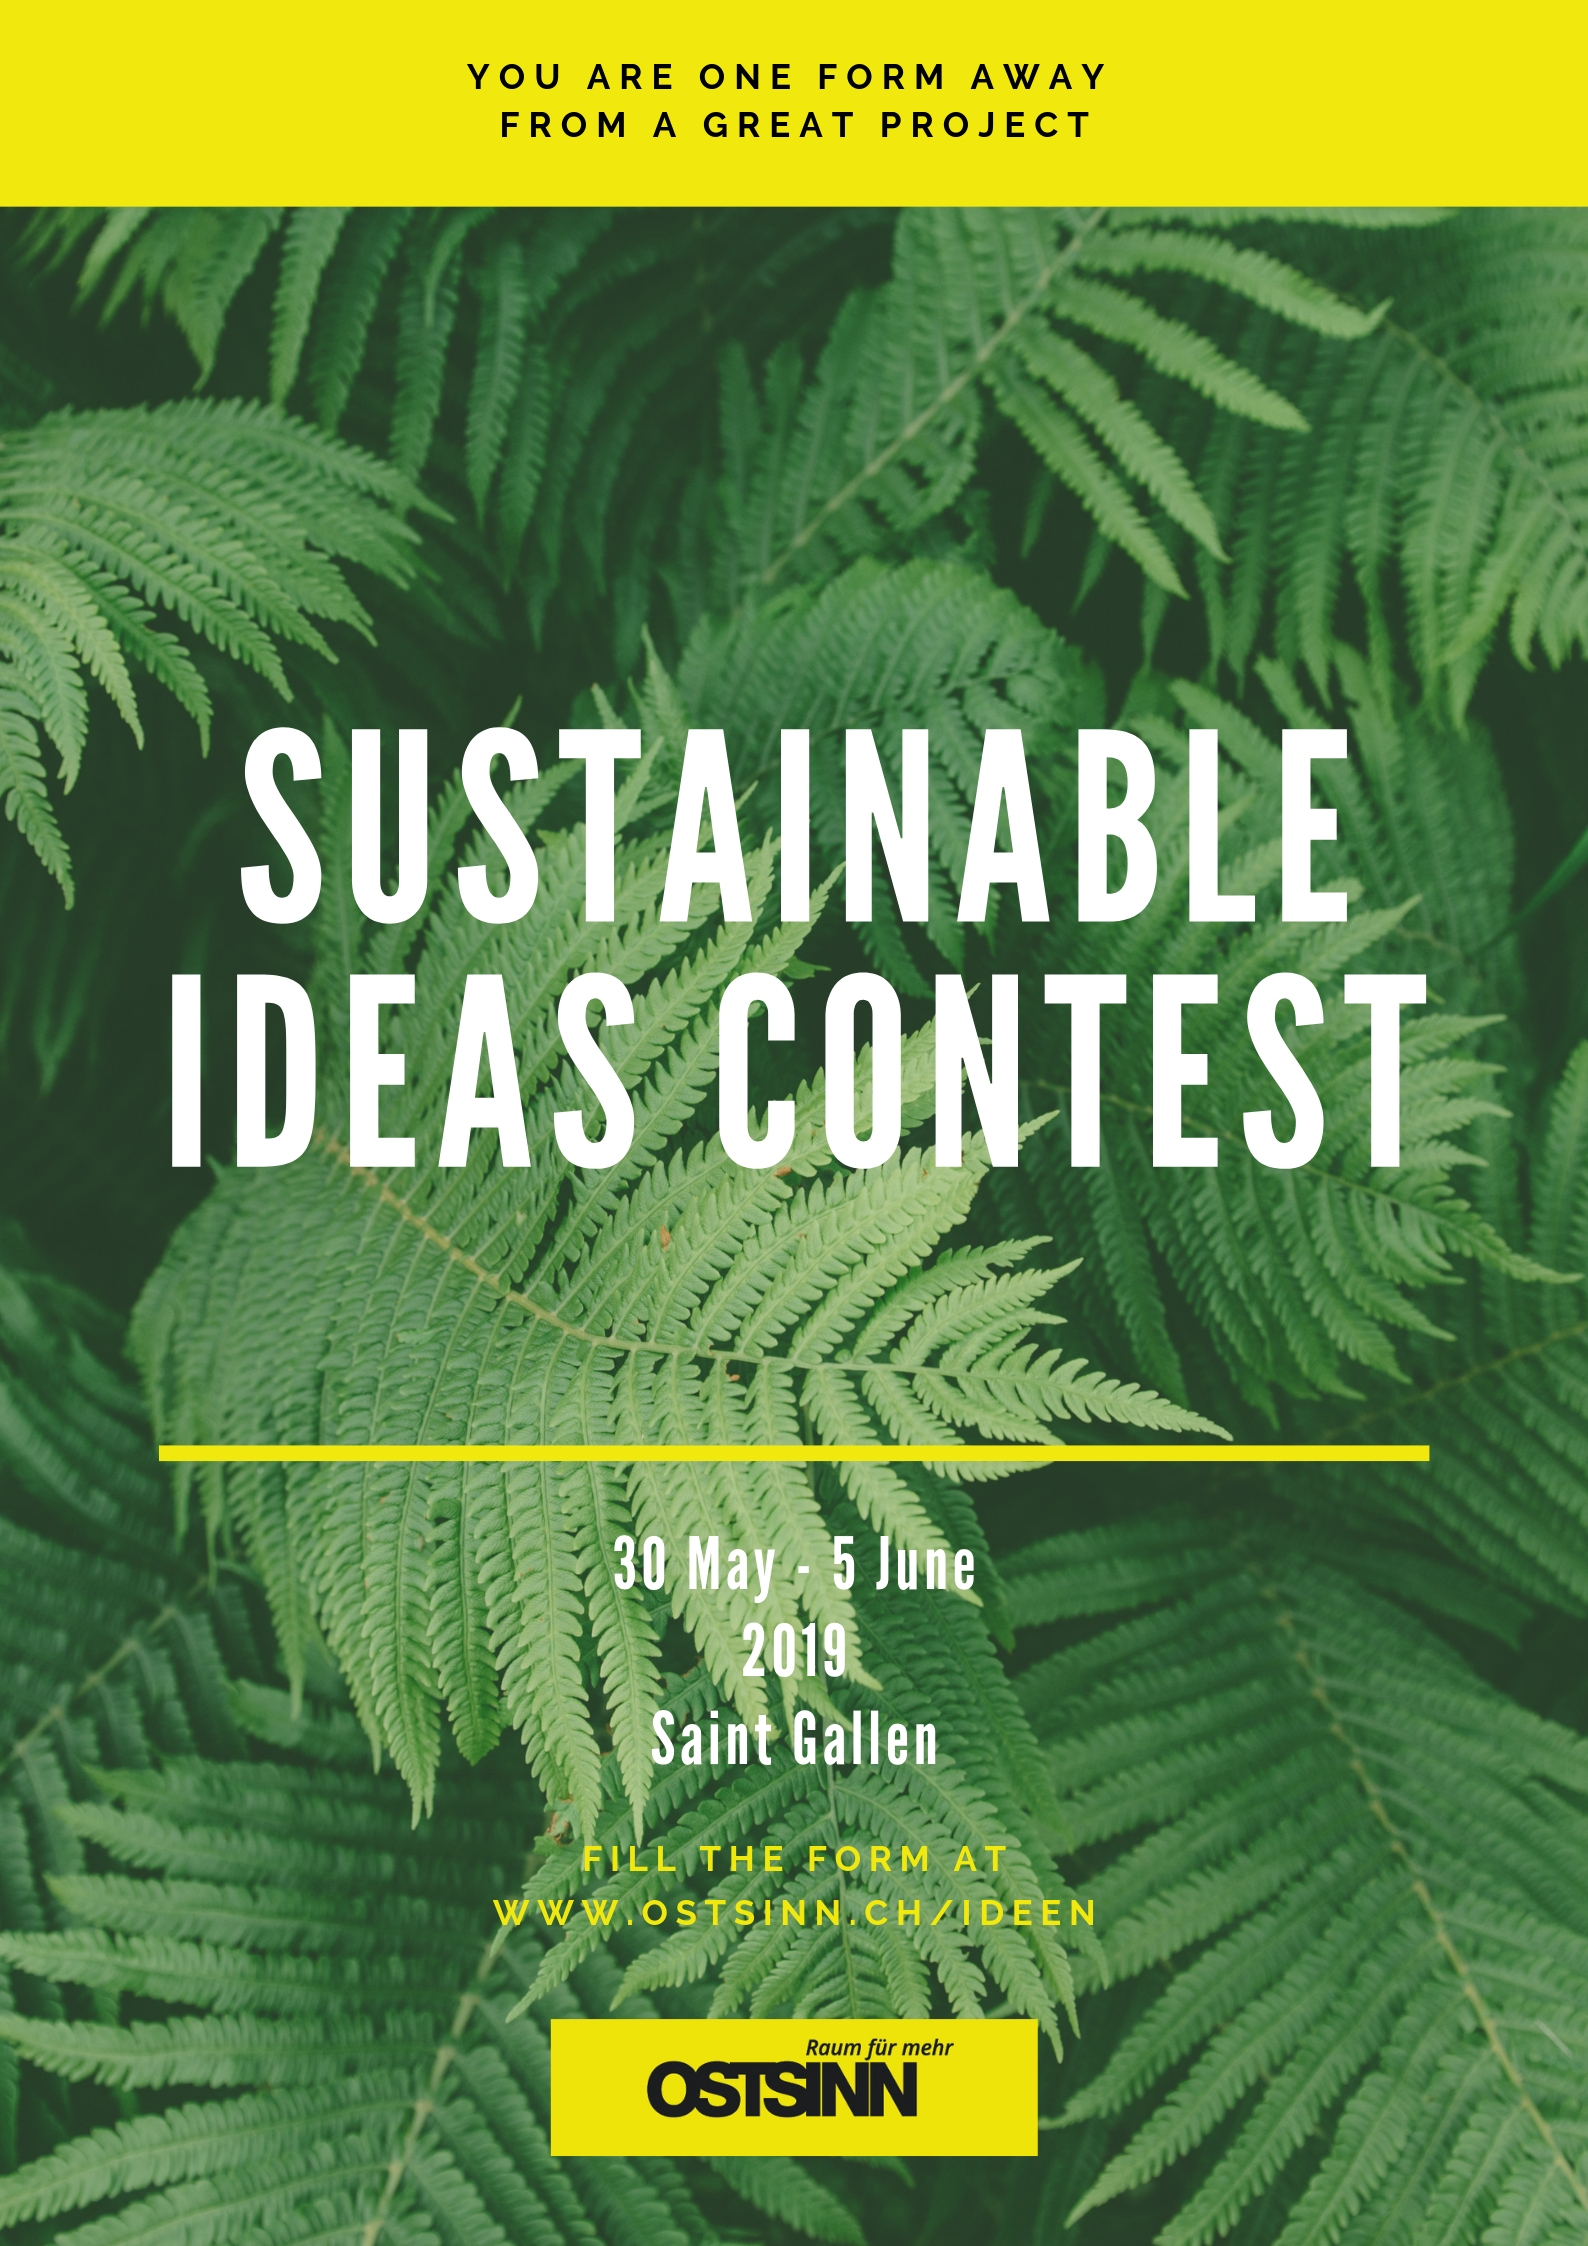 Sustainable project ideas contest – Make your ideas come true